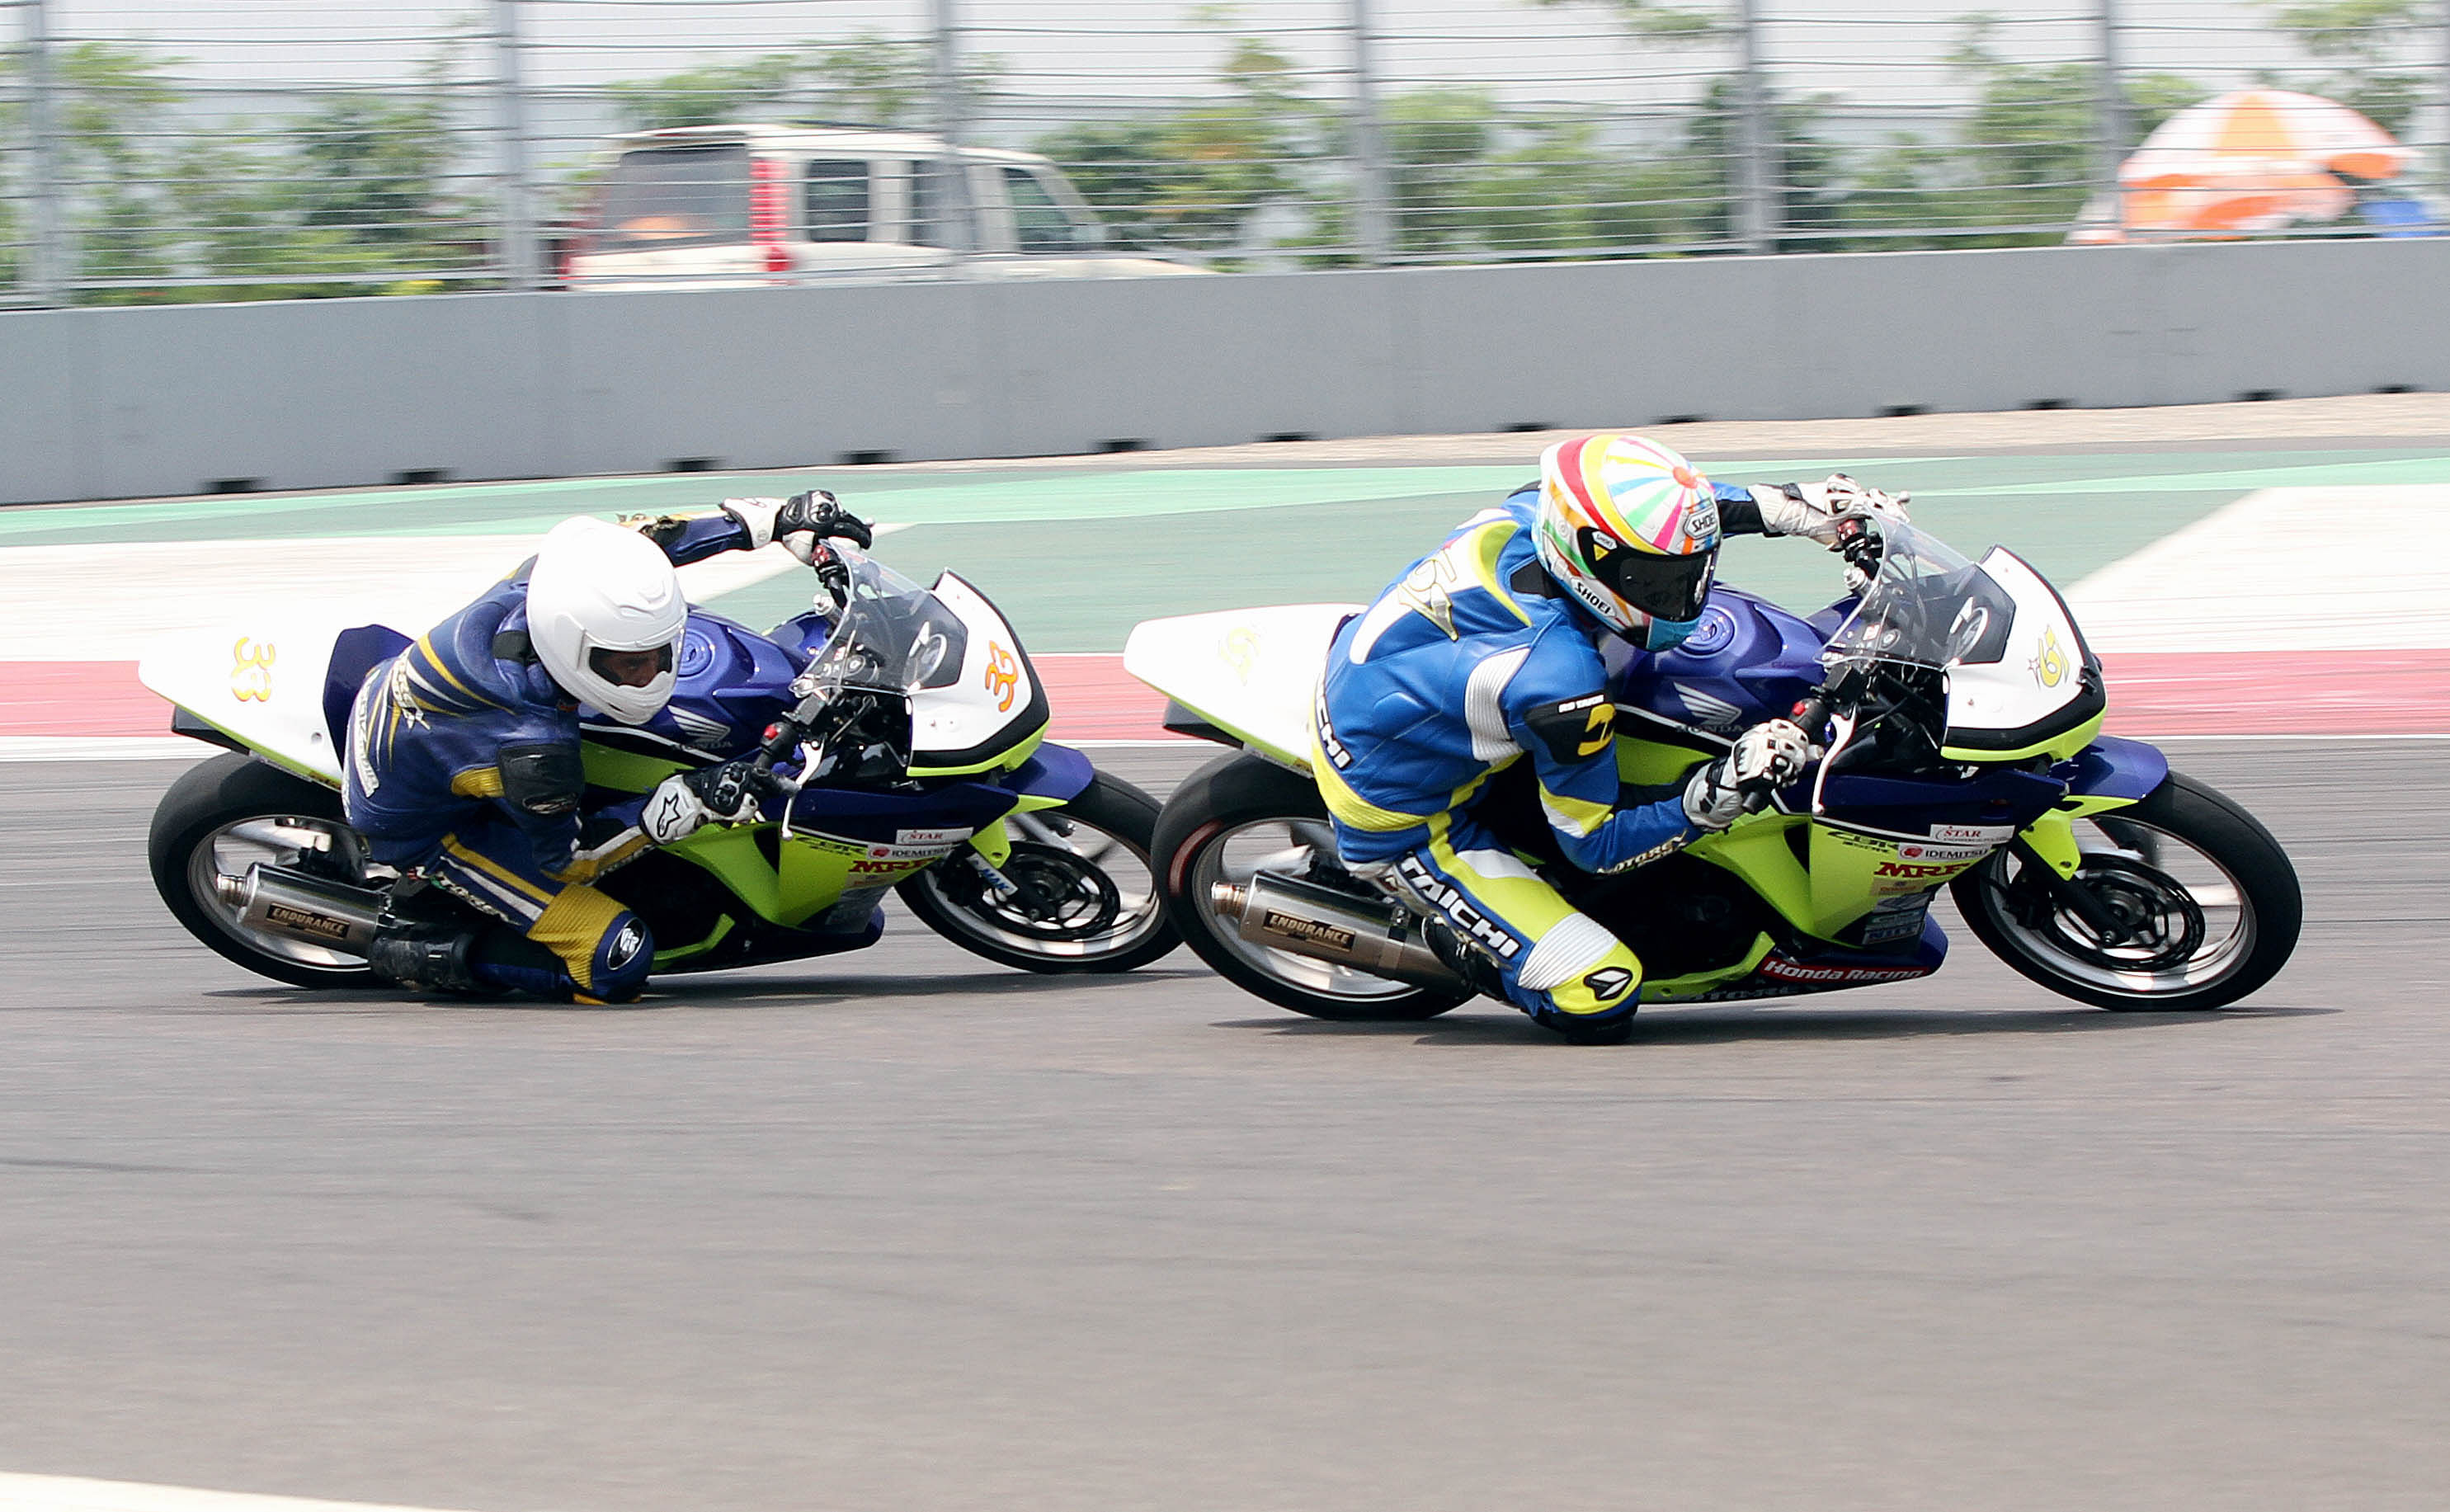 Deepak wins national motorcycle racing by 0.024 seconds